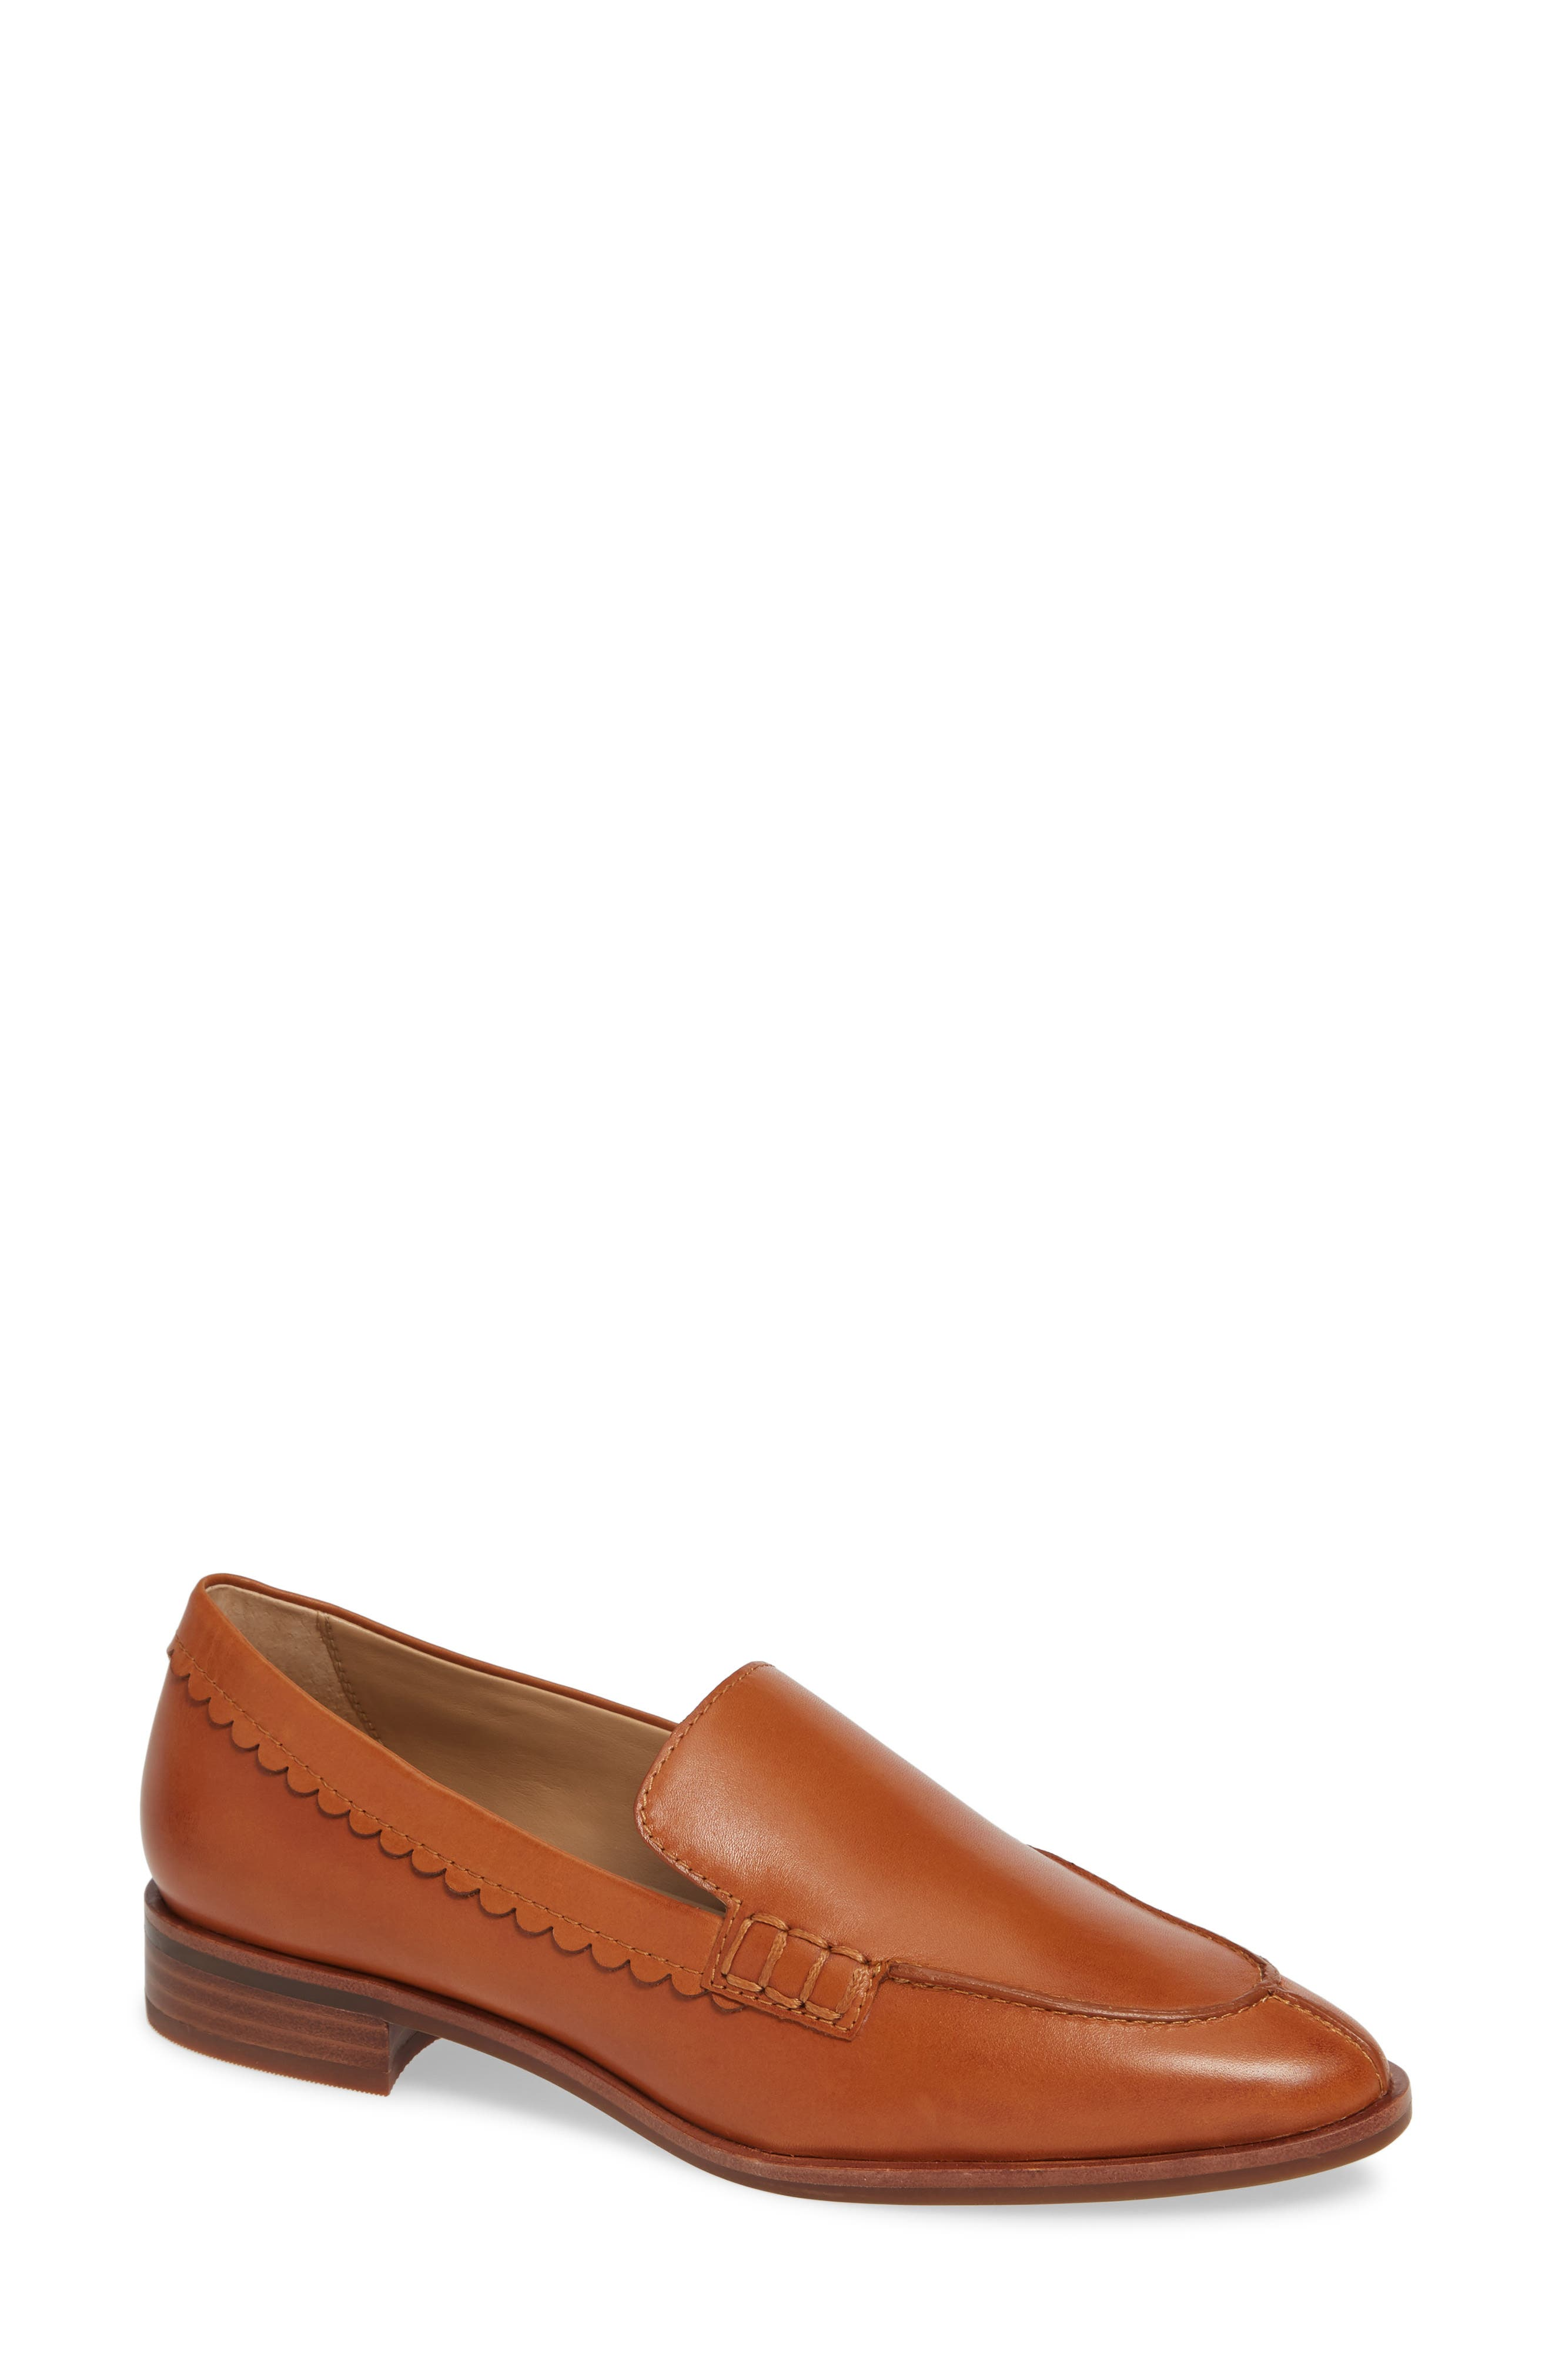 Bowery Loafer,                             Main thumbnail 1, color,                             COCONUT VACHETTA LEATHER